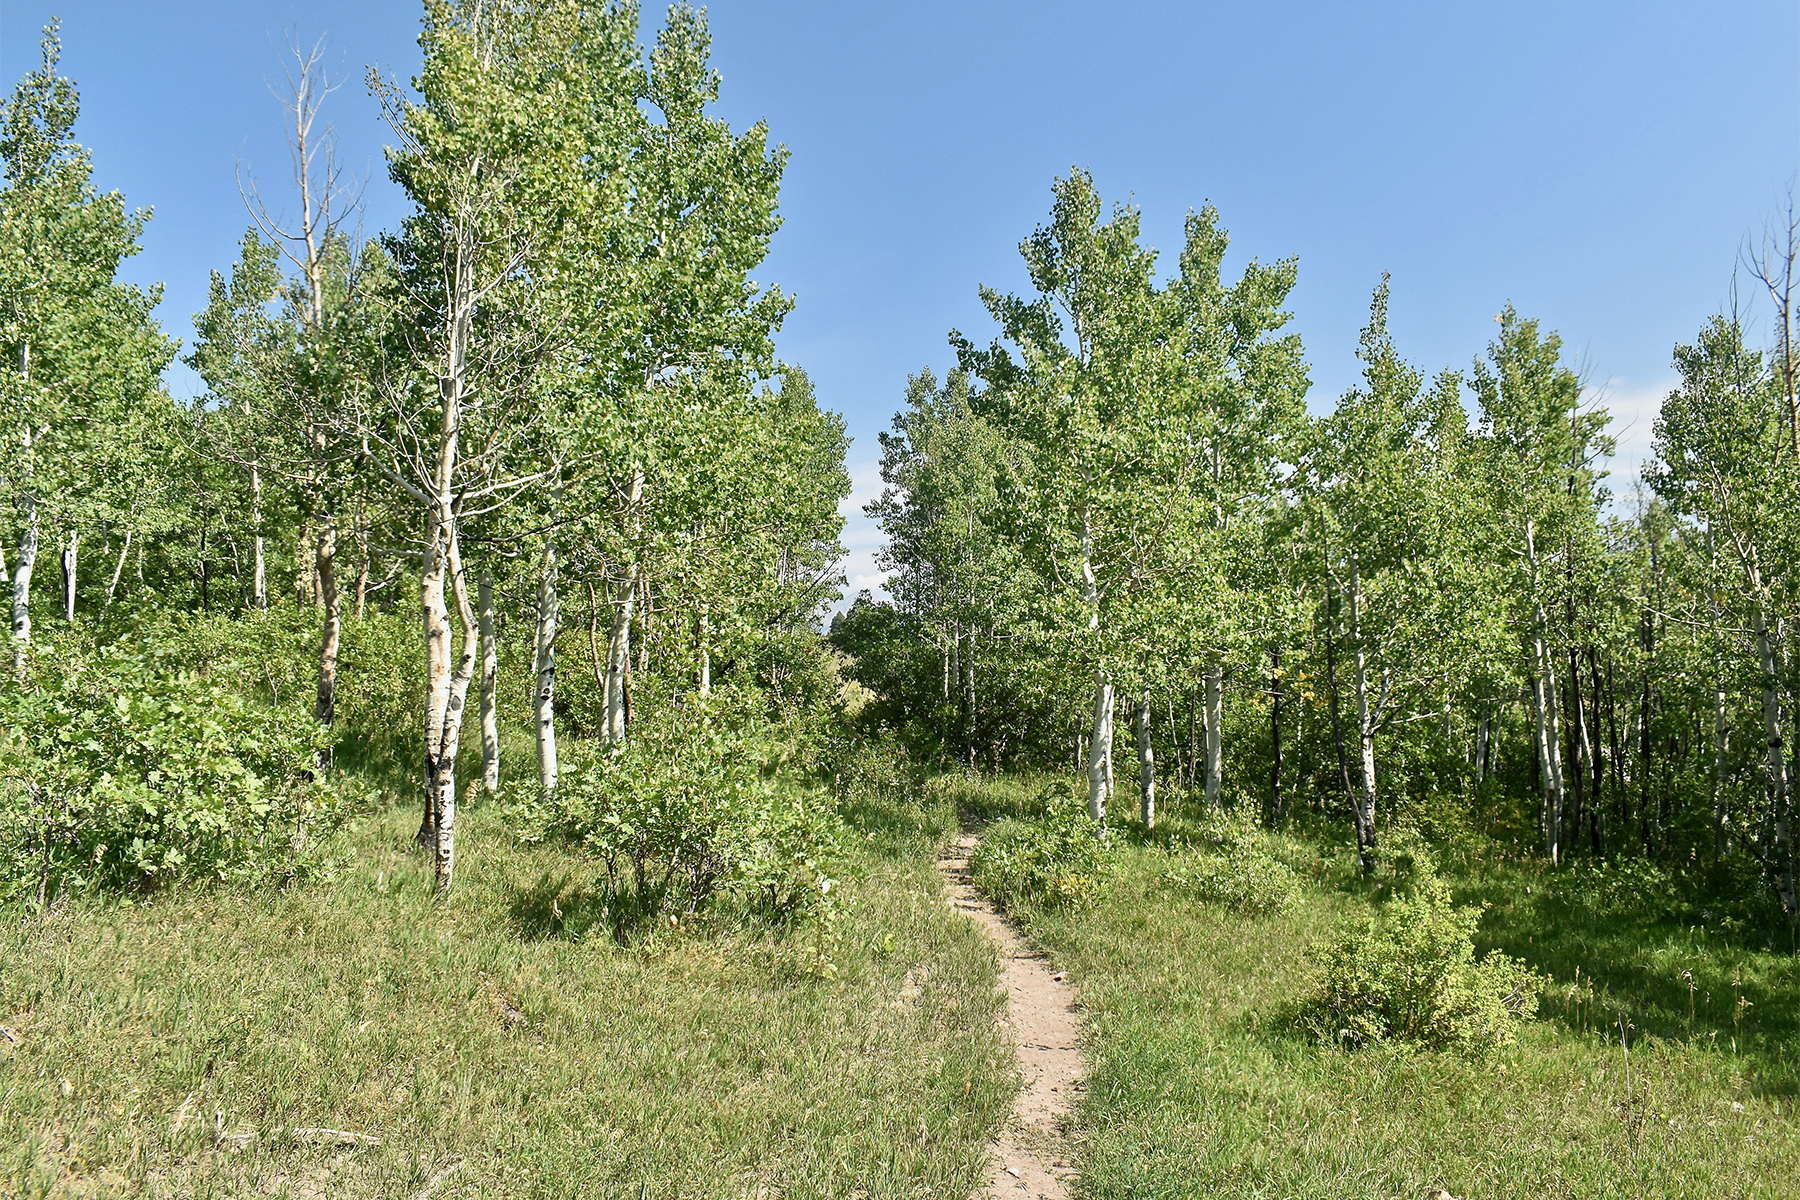 Additional photo for property listing at Montagna I TBD N US Hwy 550 Montagna I Durango, Colorado 81301 United States